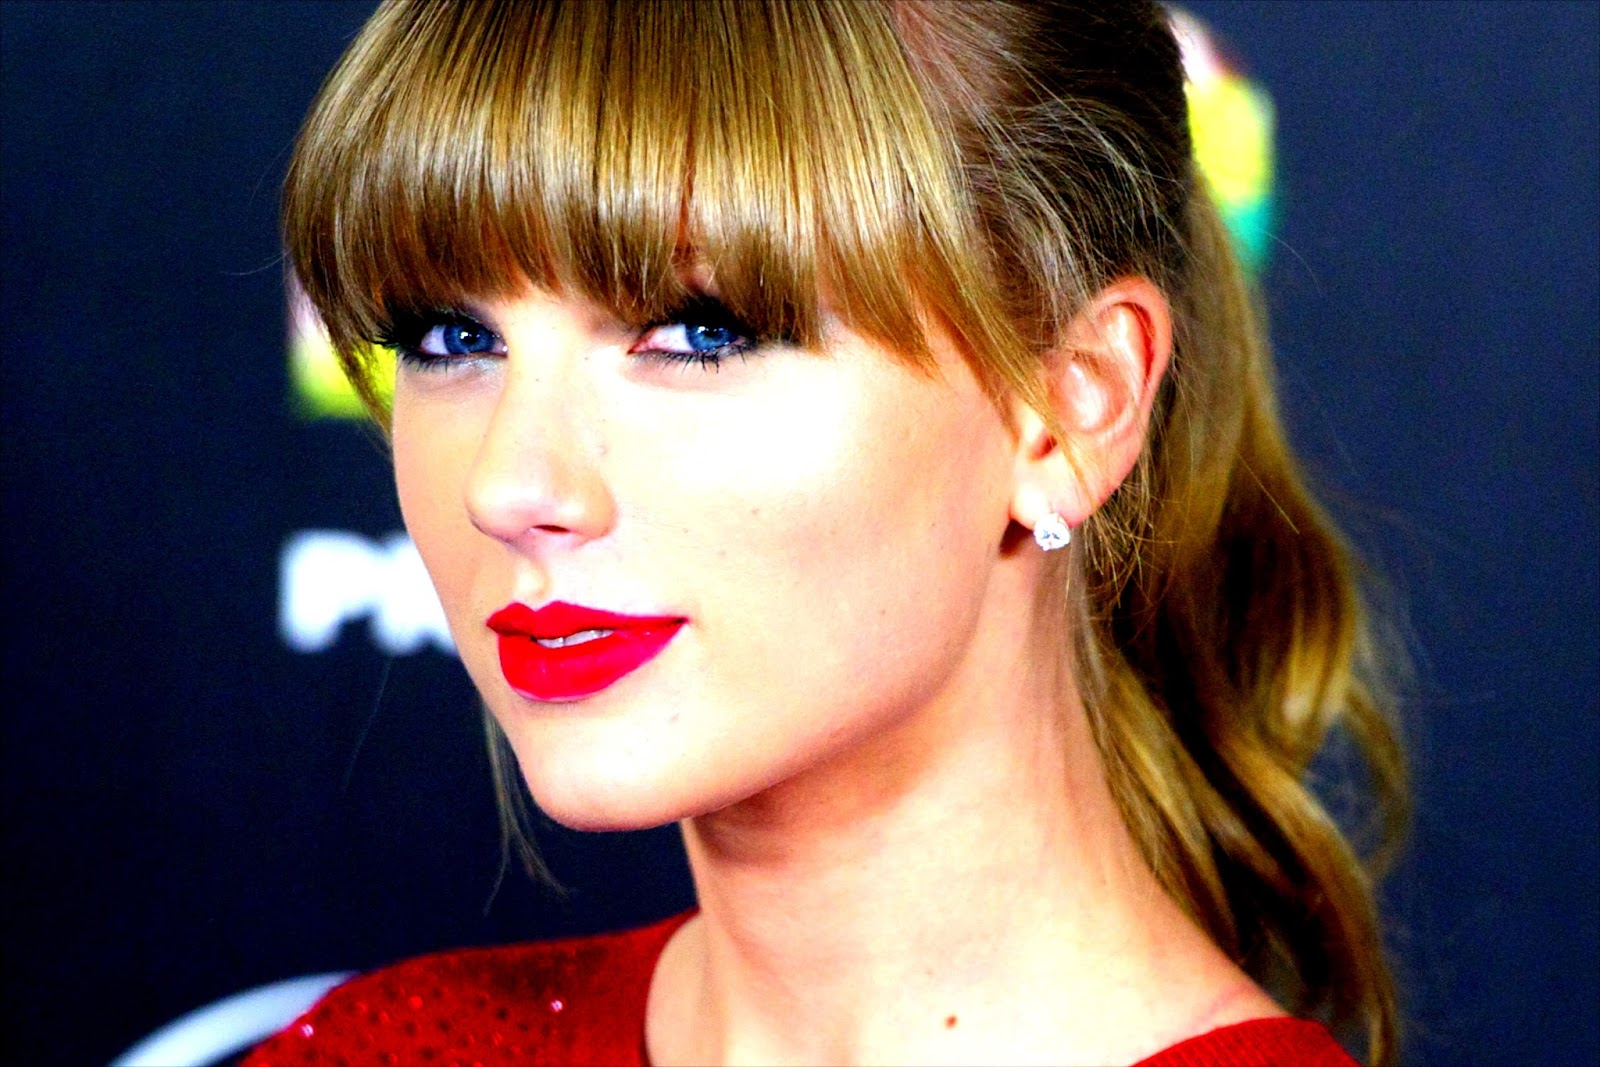 Cute Hot Taylor Swift HD Wallpapers In Red Lipsticks